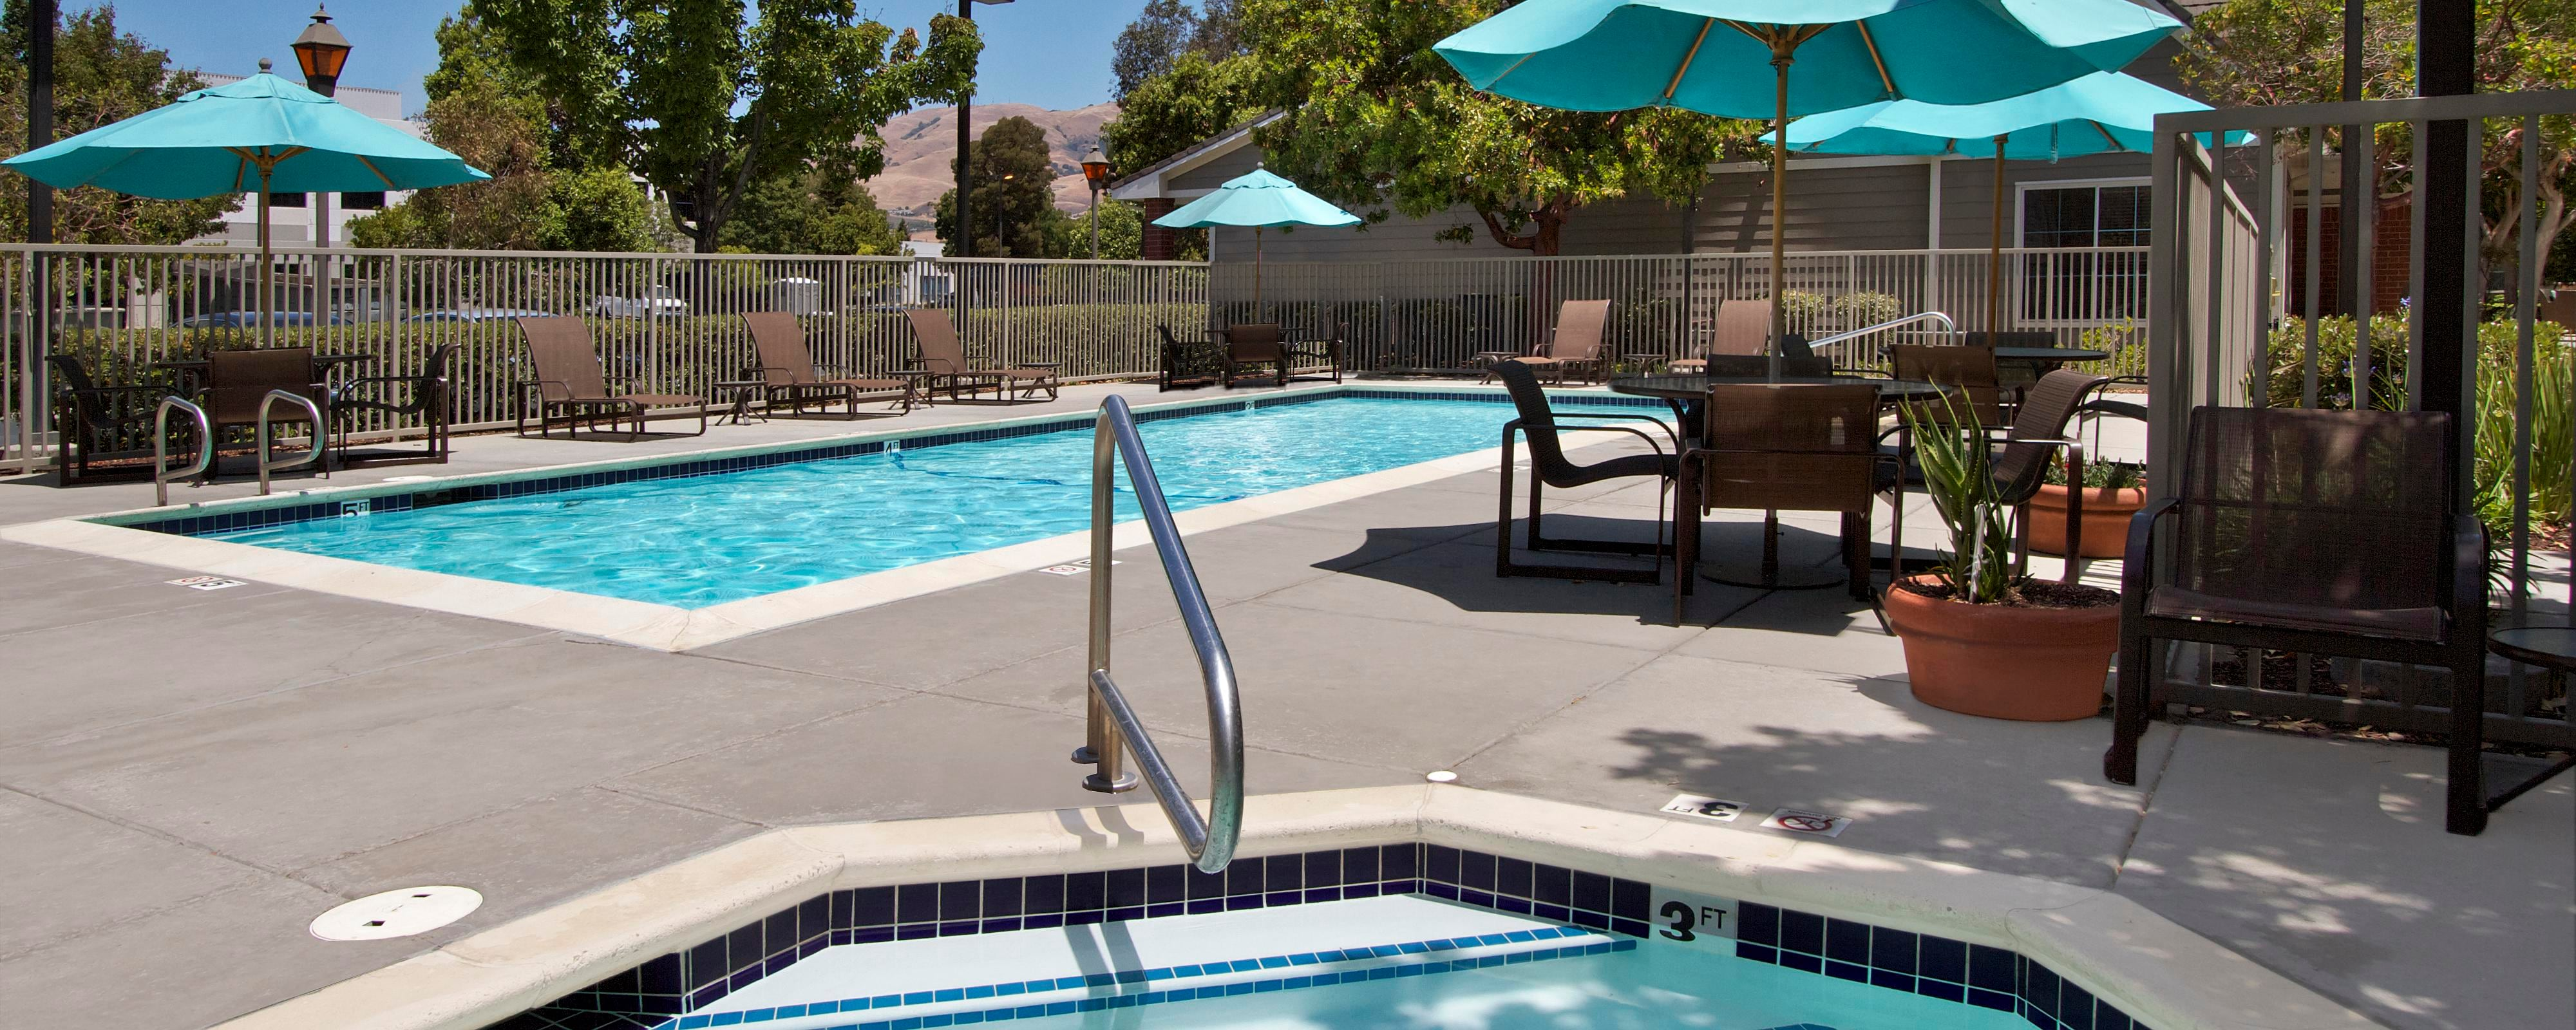 Milpitas Hotel Outdoor Pool